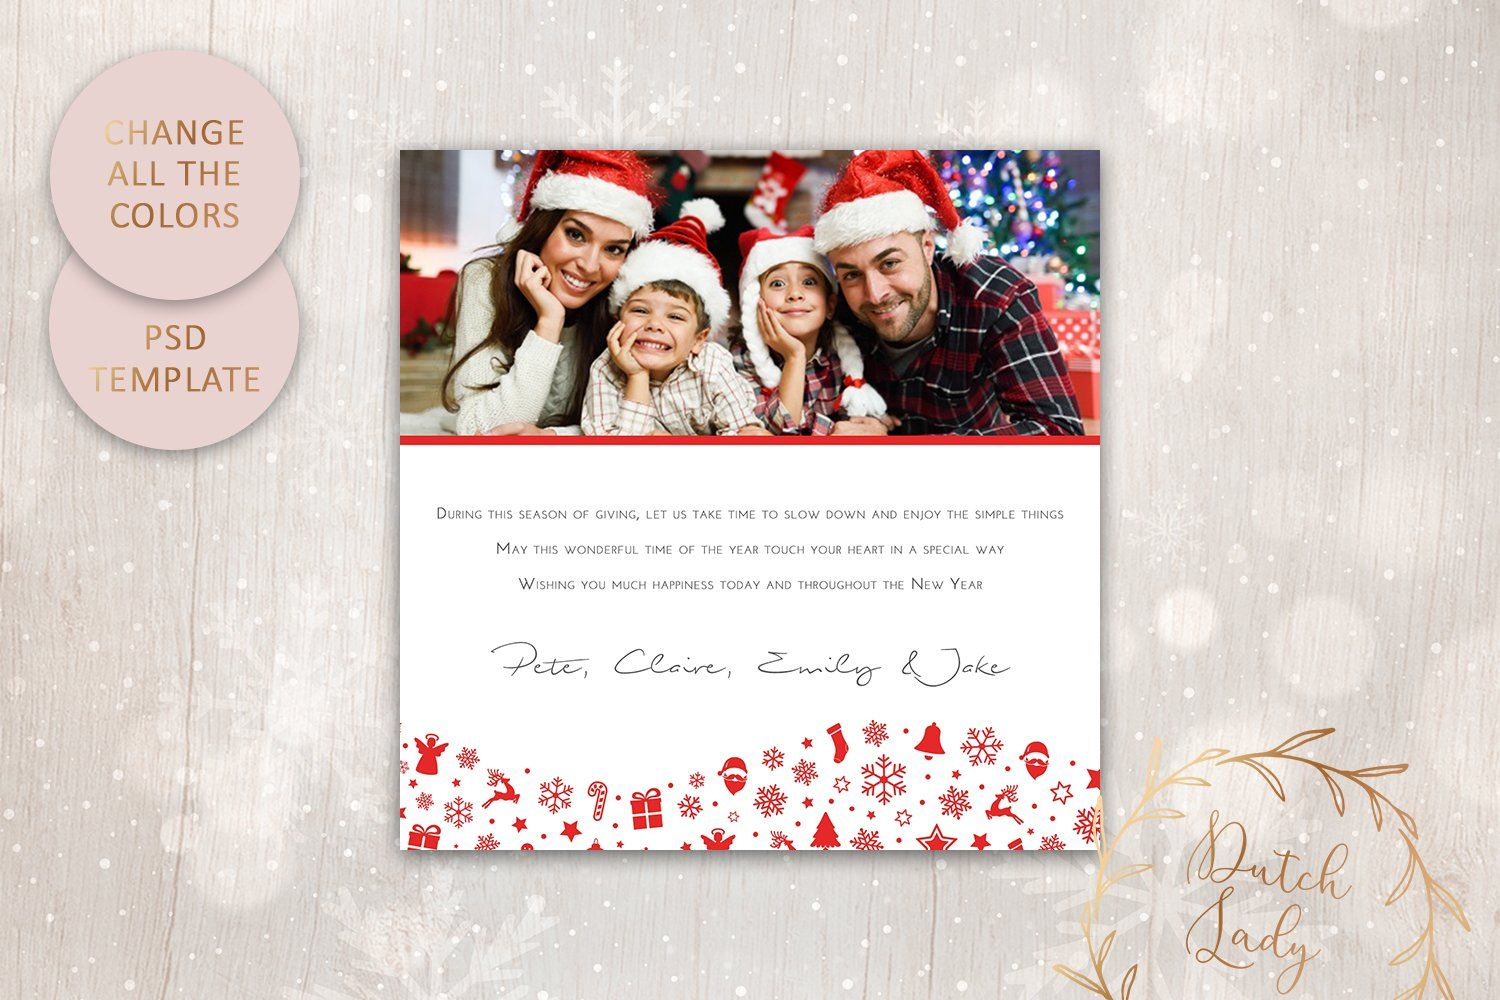 Psd Christmas Card Template 7 Christmas Card Template Photo Card Template Card Template